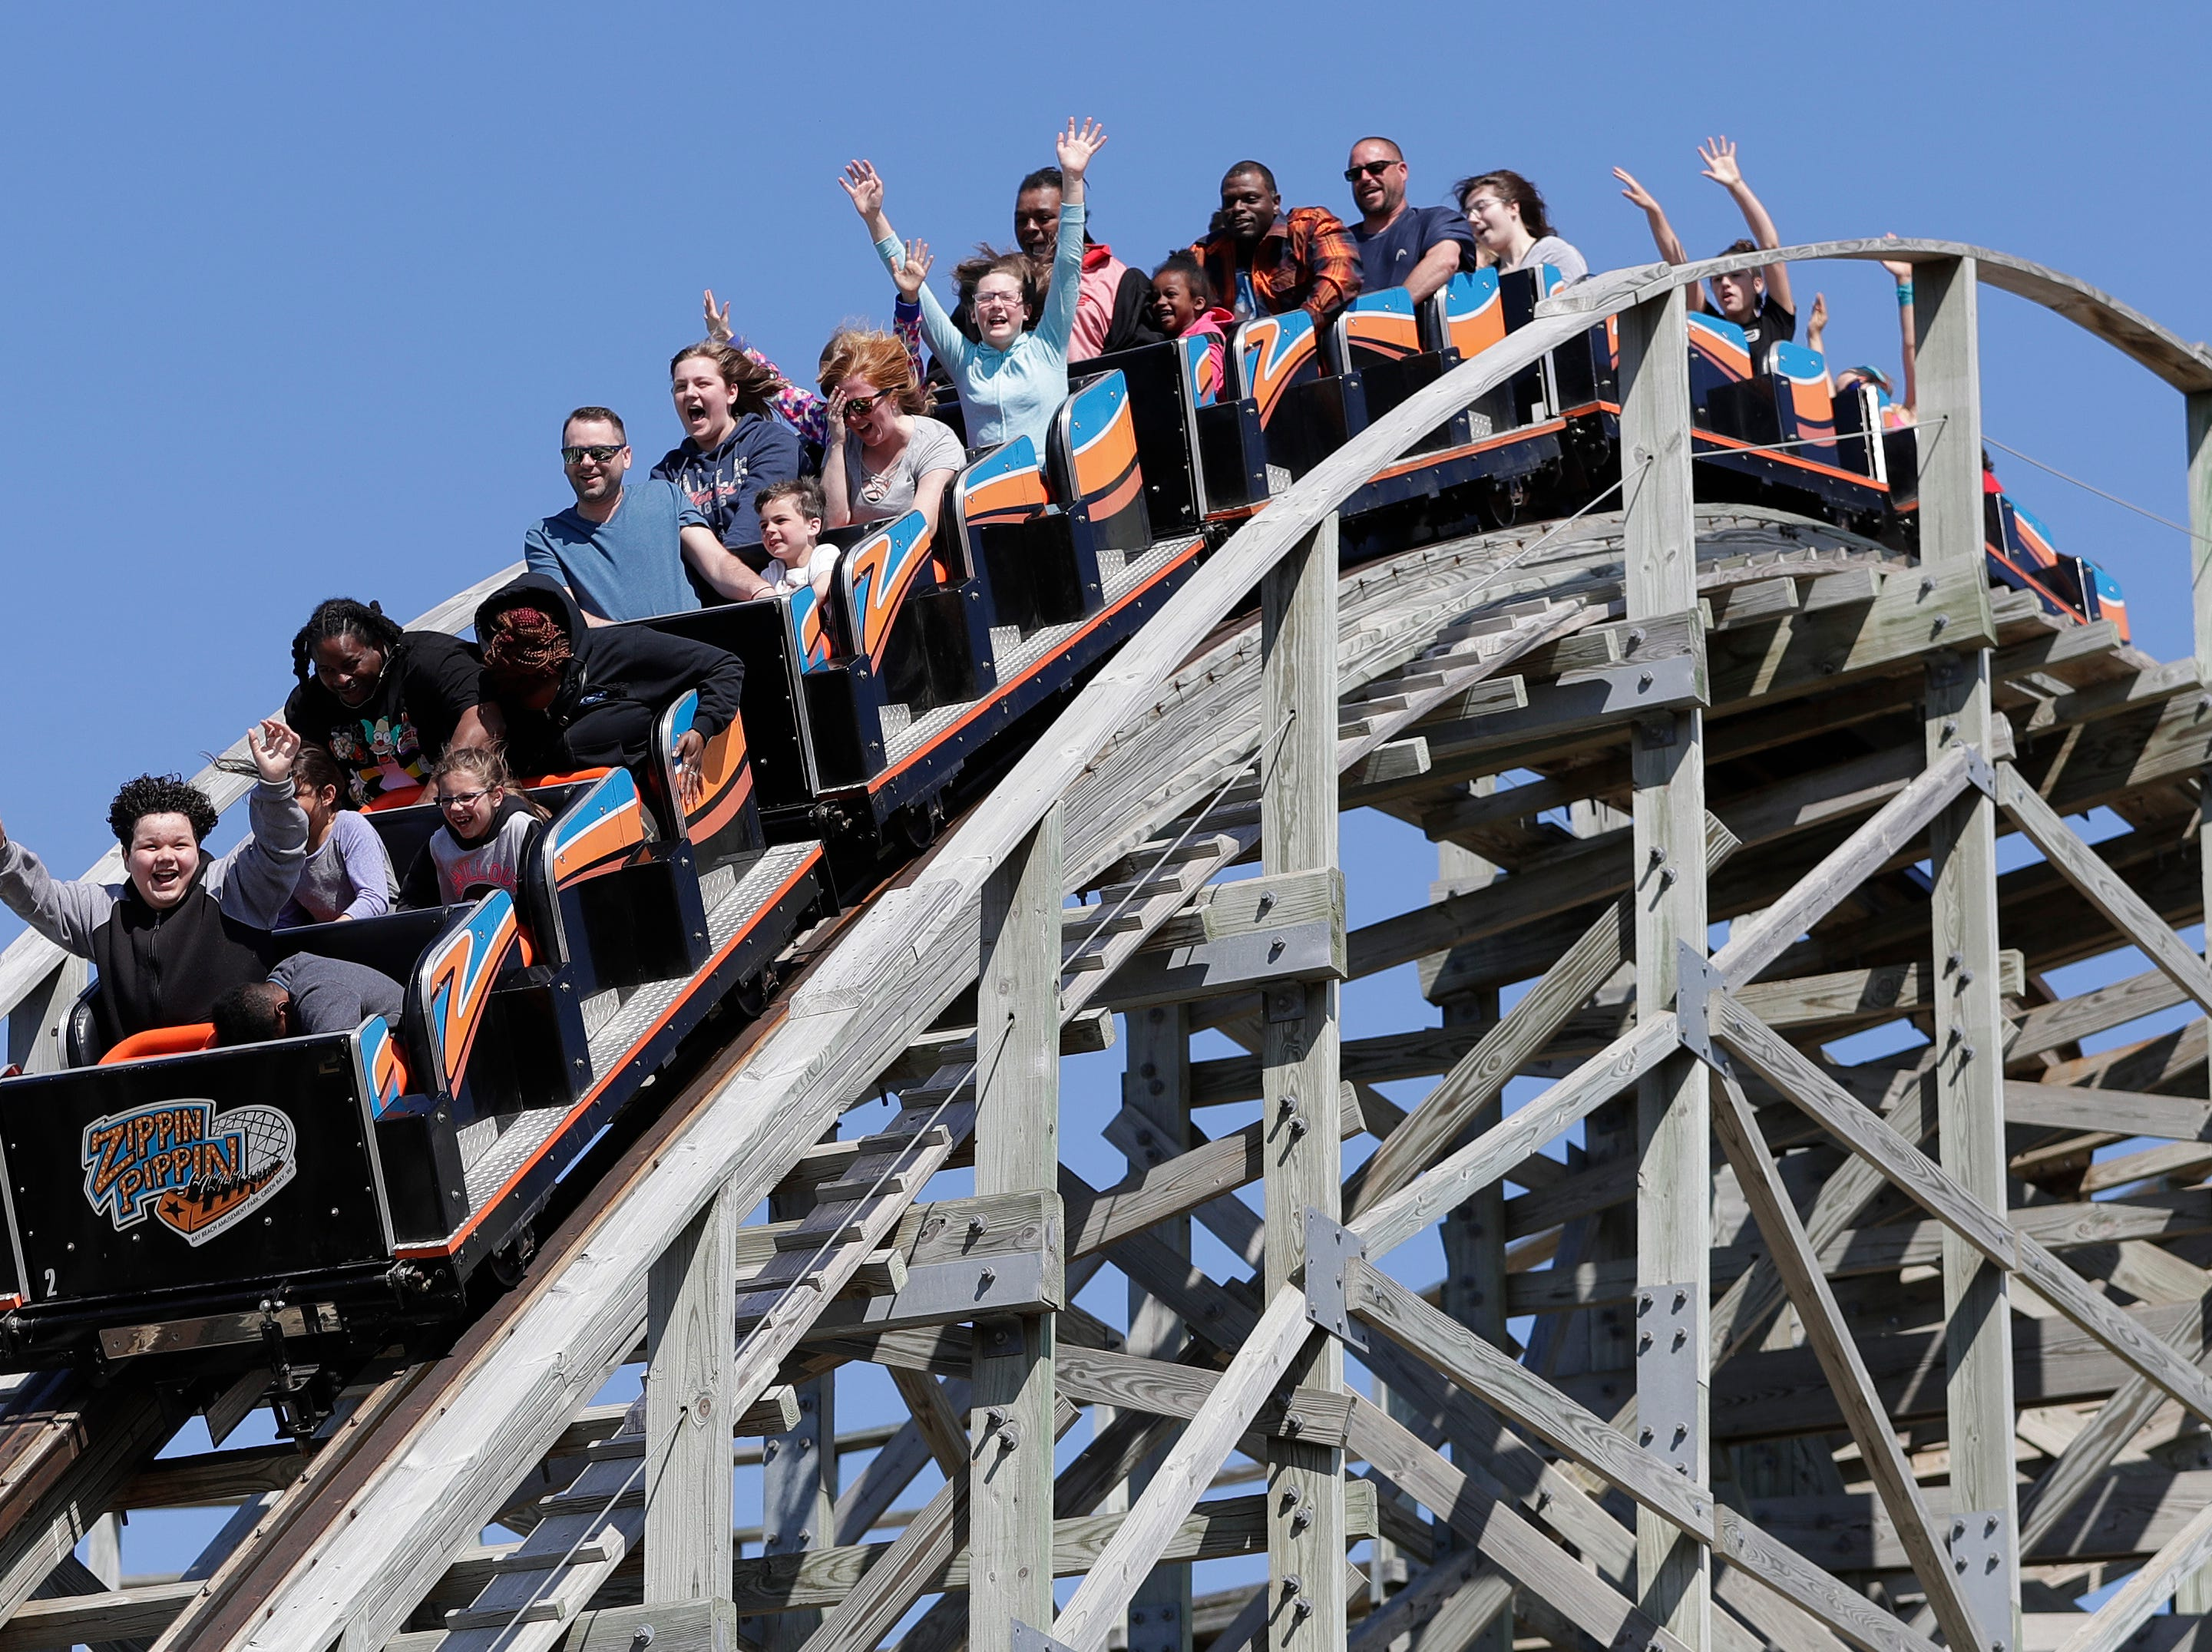 Riders prepare for a drop on the Zippin Pippin roller coaster at Bay Beach Amusement Park on May 4, 2019, the first day of the 2019 season, in Green Bay, Wis. Sarah Kloepping/USA TODAY NETWORK-Wisconsin